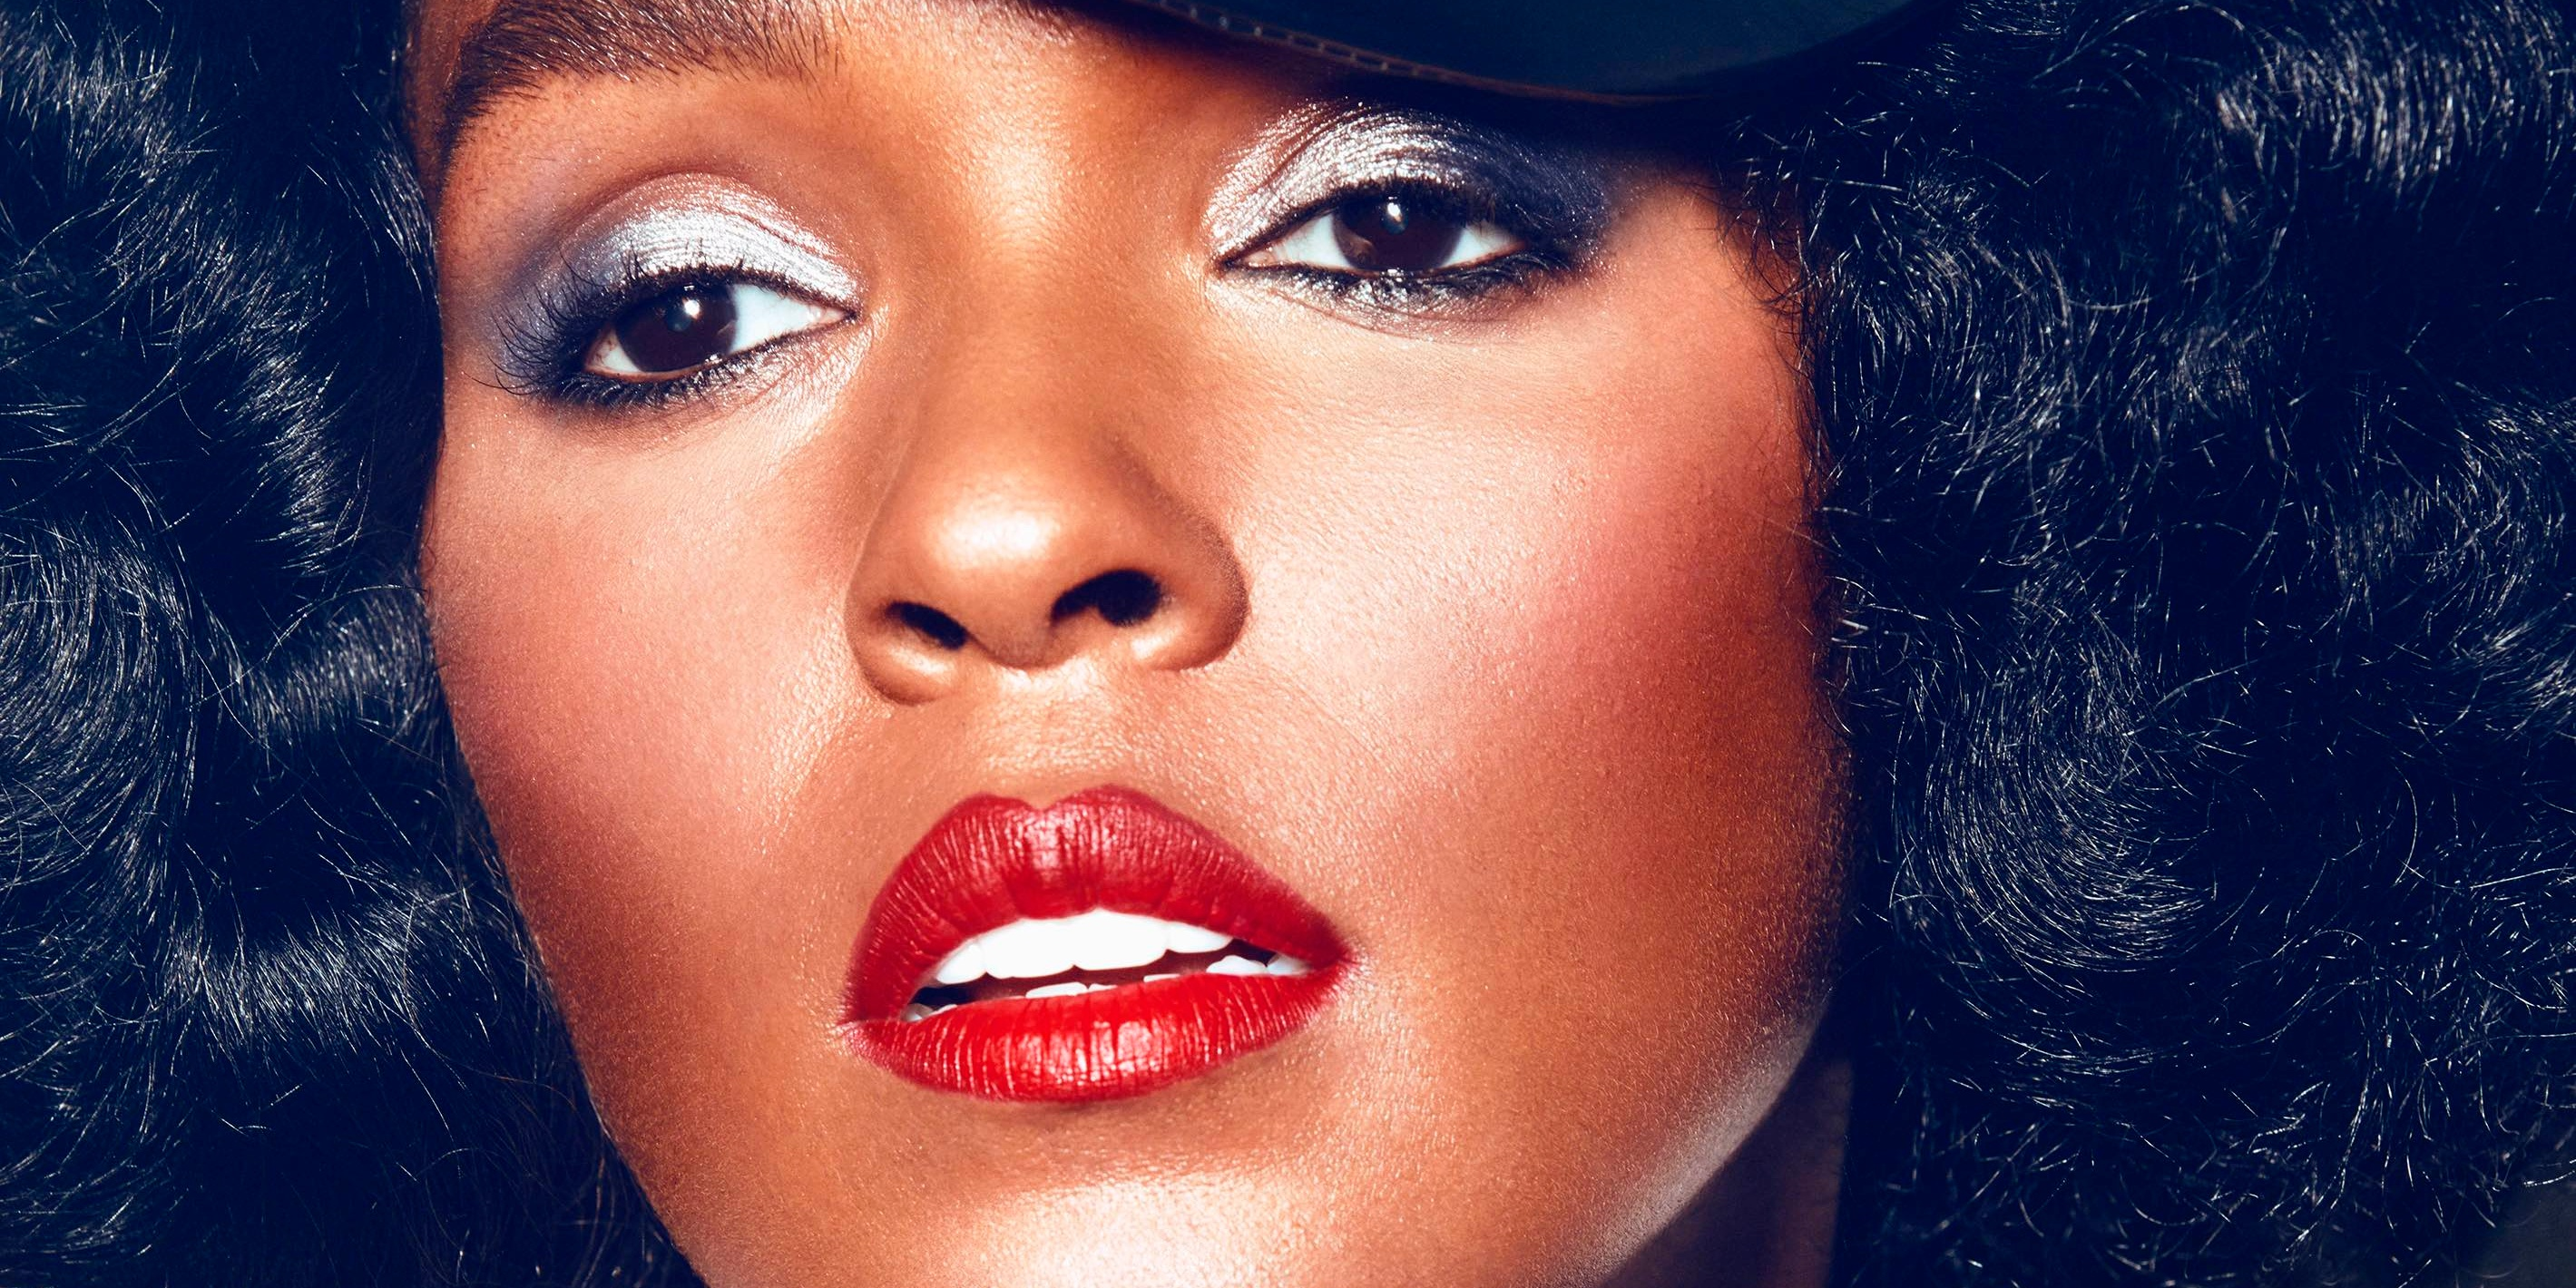 Janelle Monáe releases stunning music videos for two new songs, 'Make Me Feel' and 'Django Jane' – watch